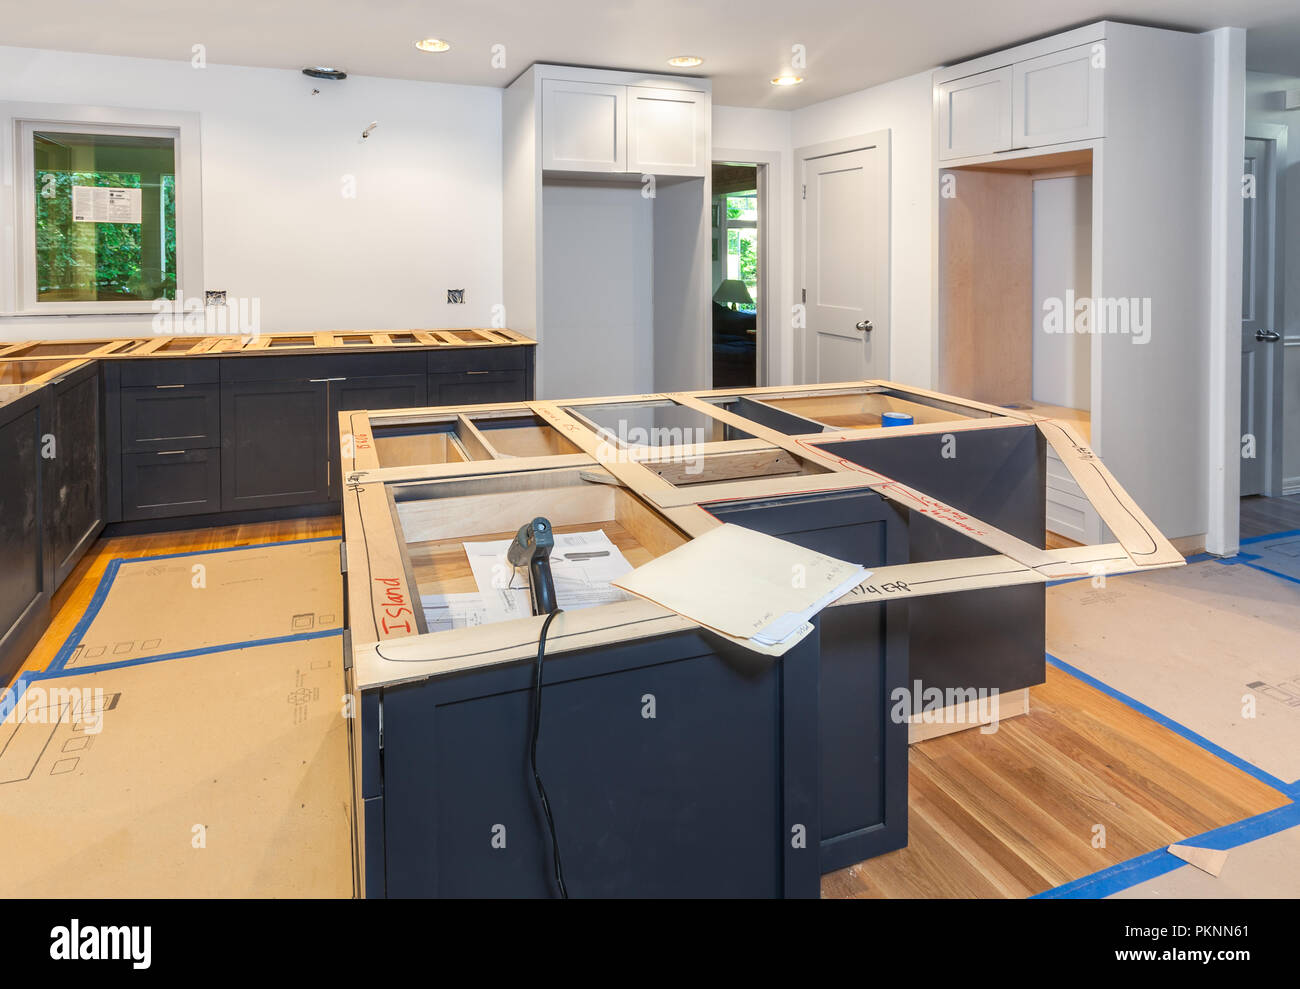 Kitchen Island Design Template Making Balsa Wood Templates For Kitchen Countertops The Island And